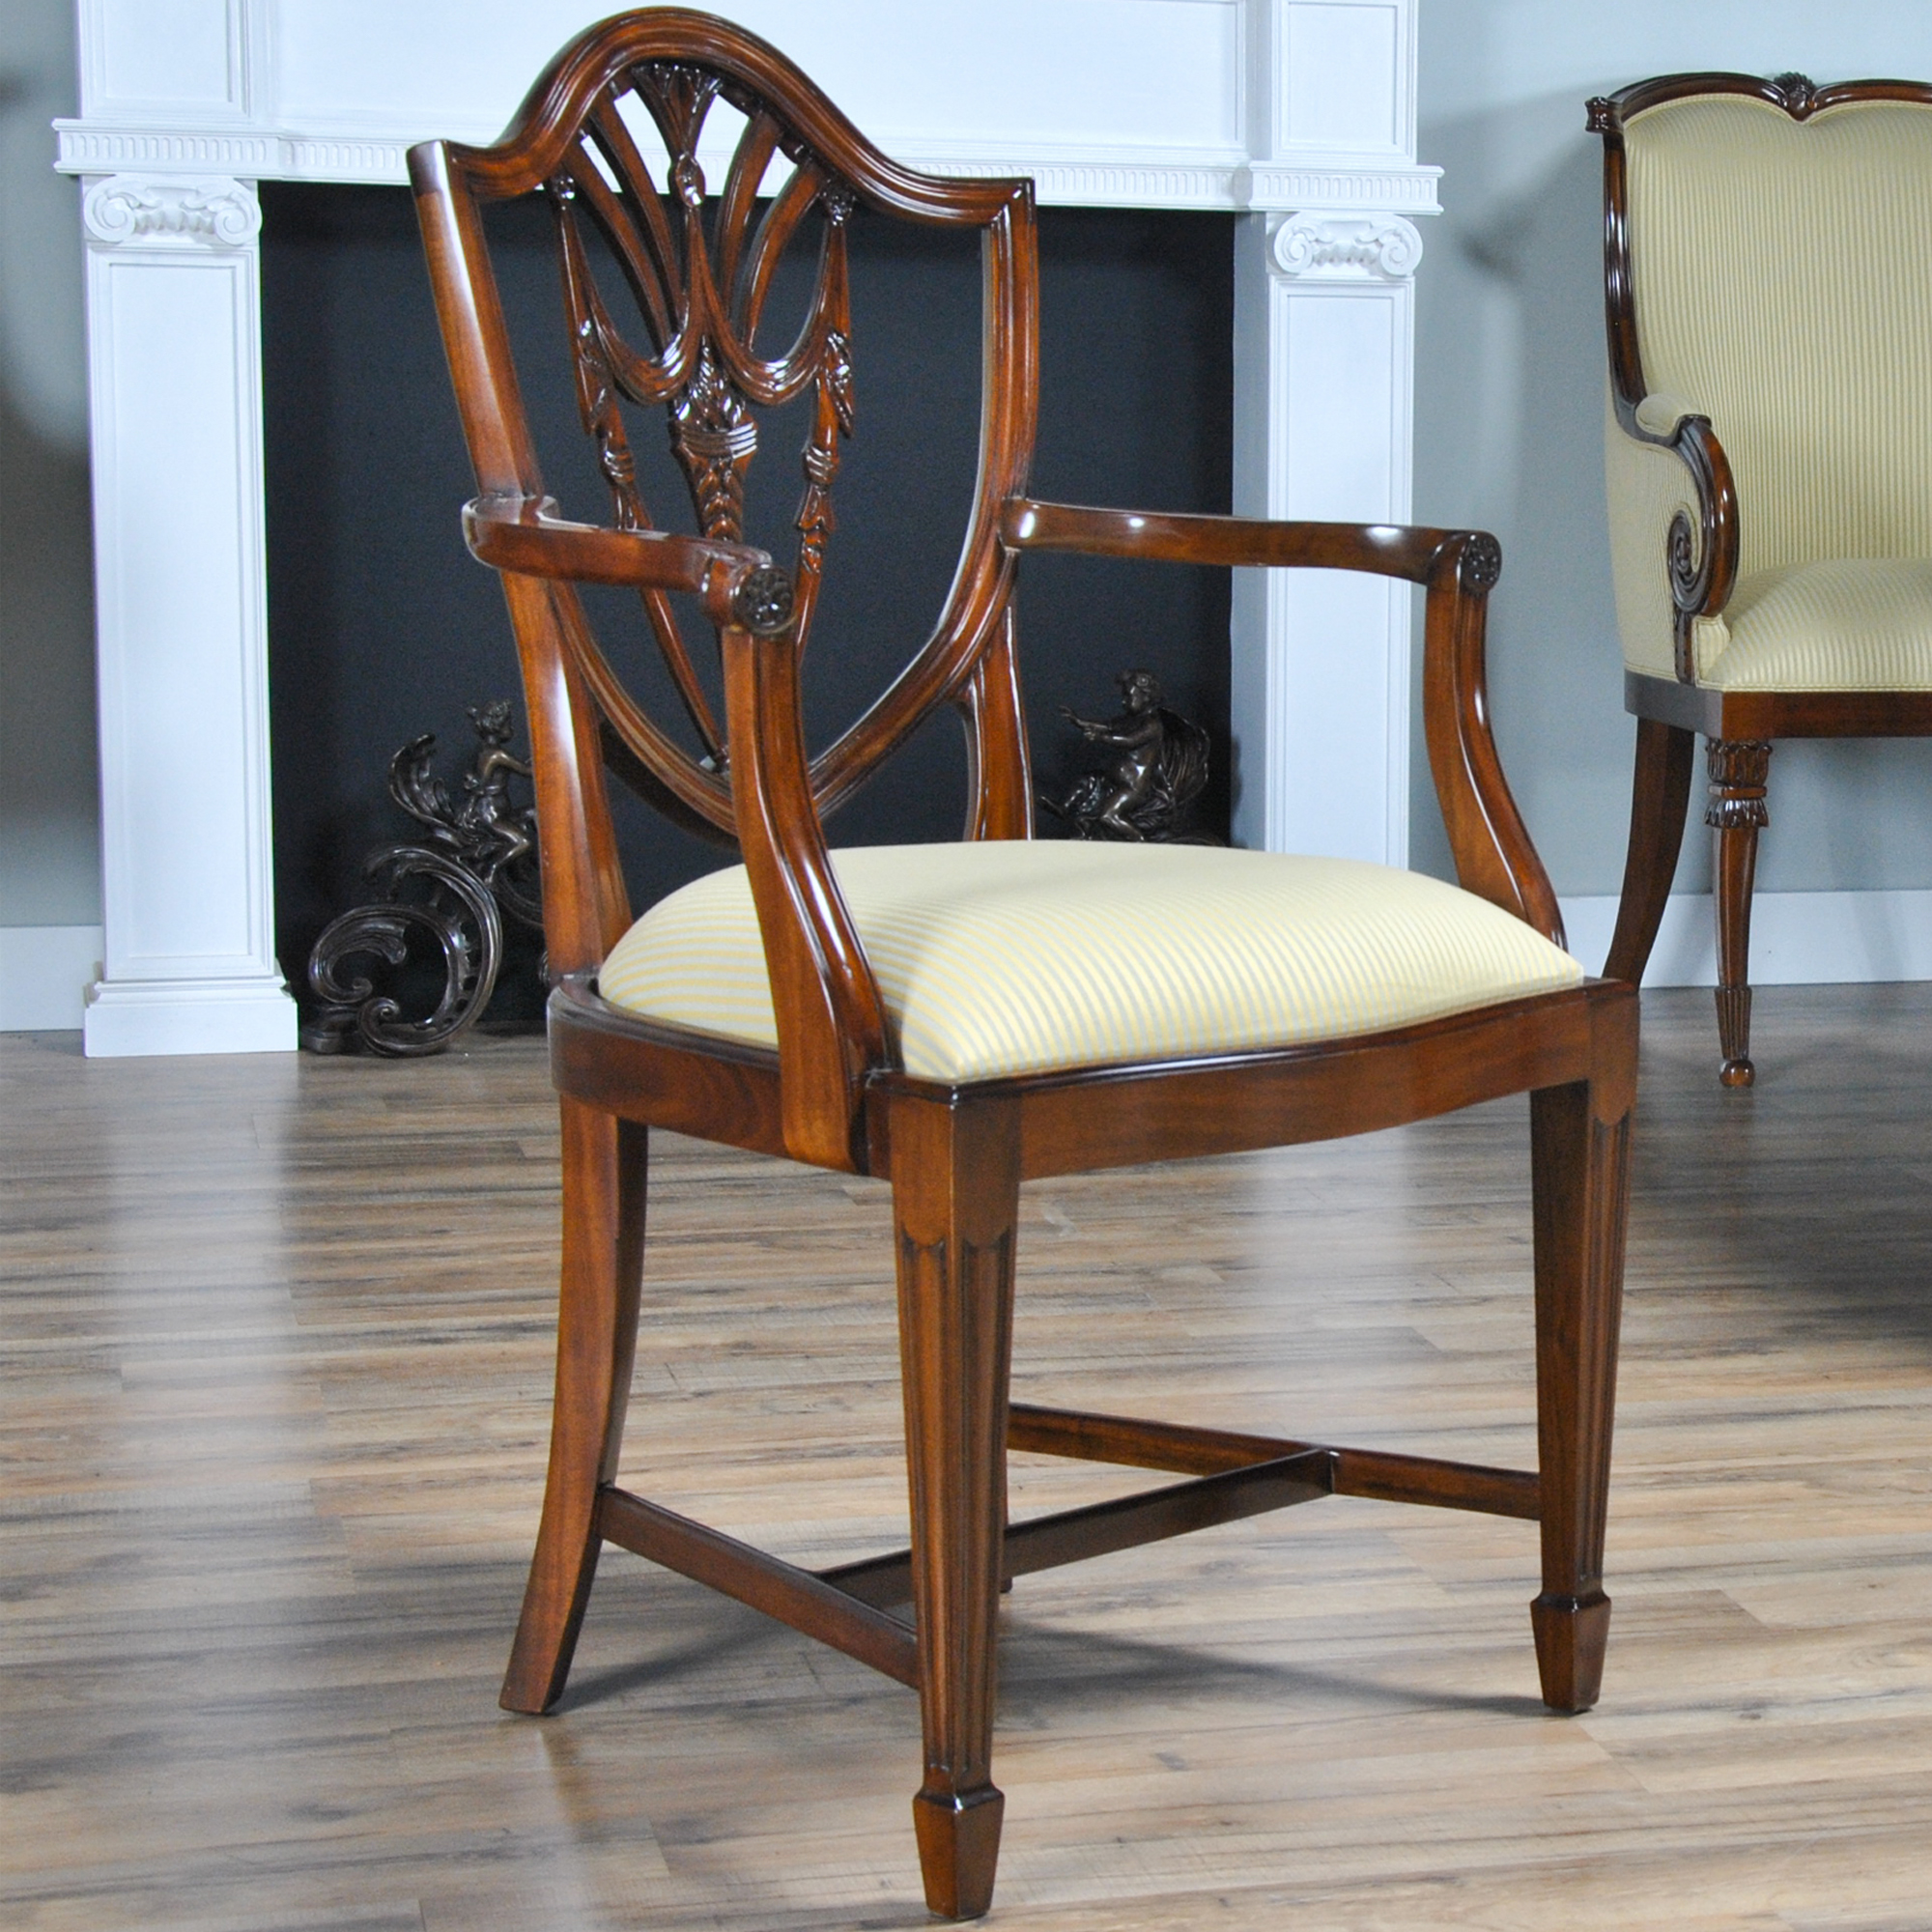 Shield Back Dining Room Chairs: Drape Carved Shield Back Chairs, Set Of 10, Niagara Furniture